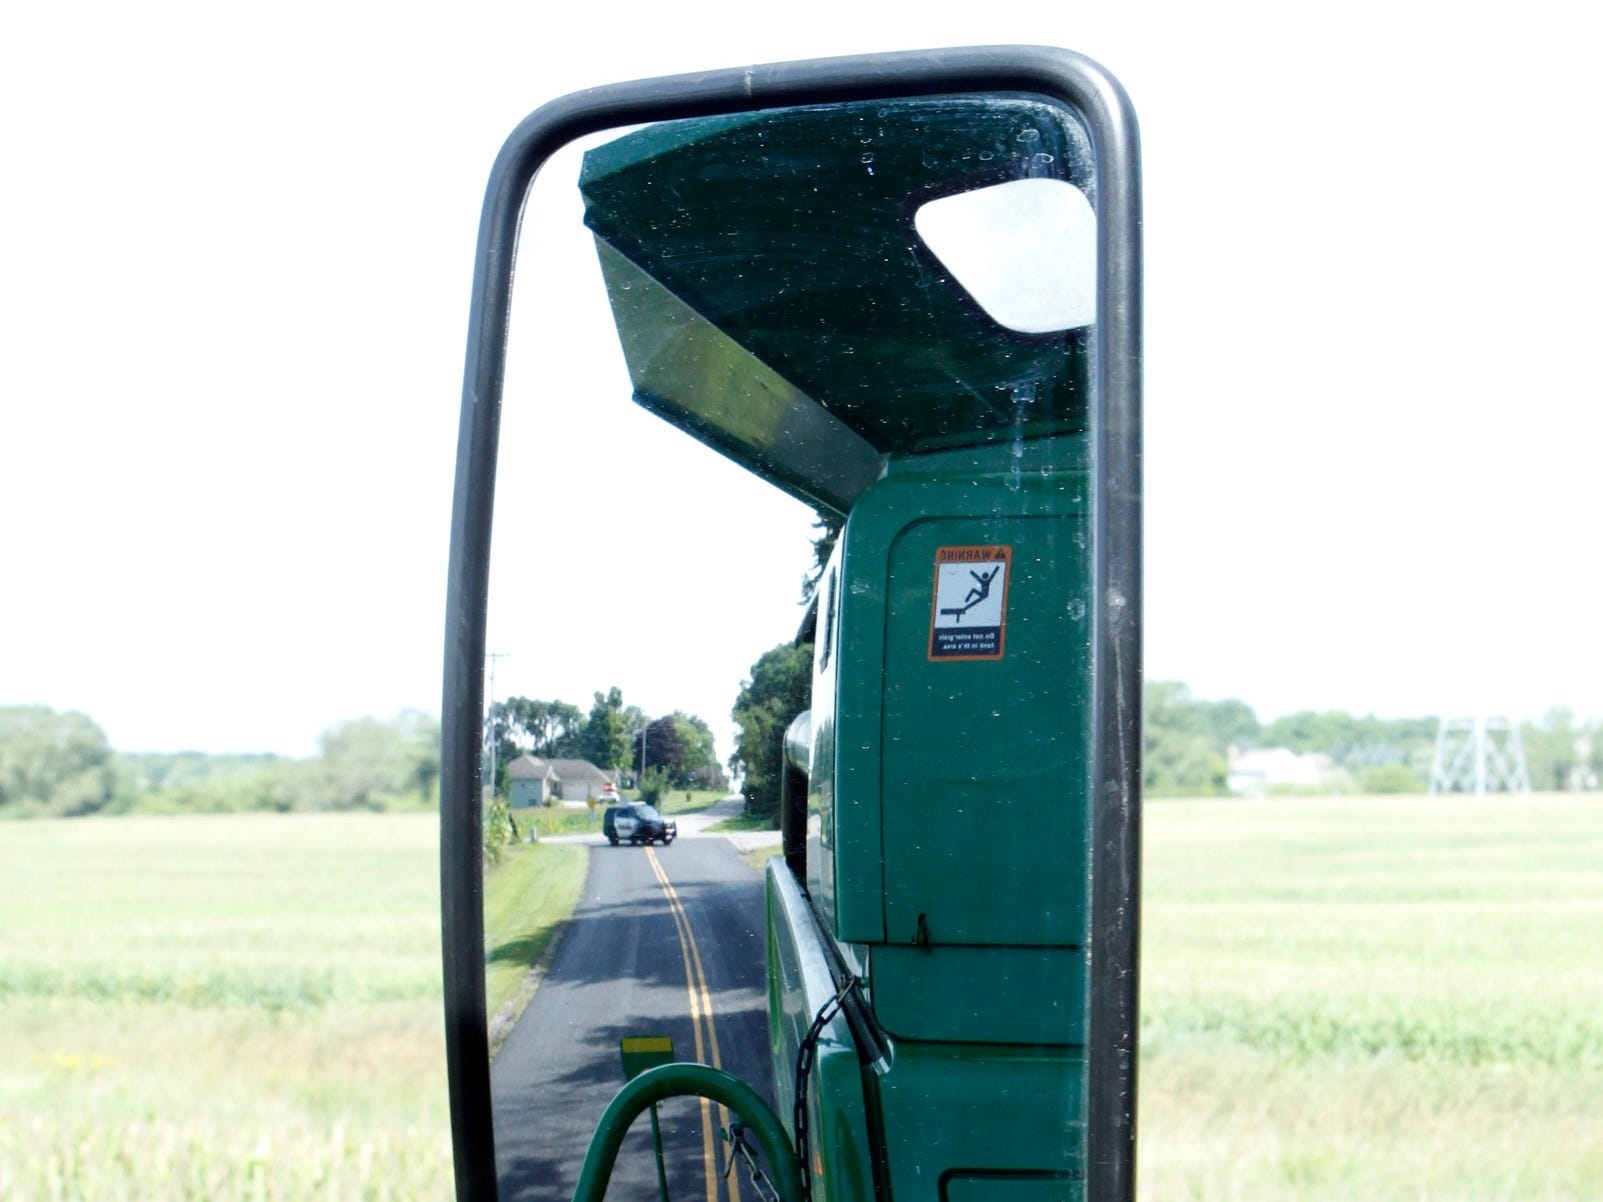 A rear-facing mirror helps equipment drivers see traffic behind them.